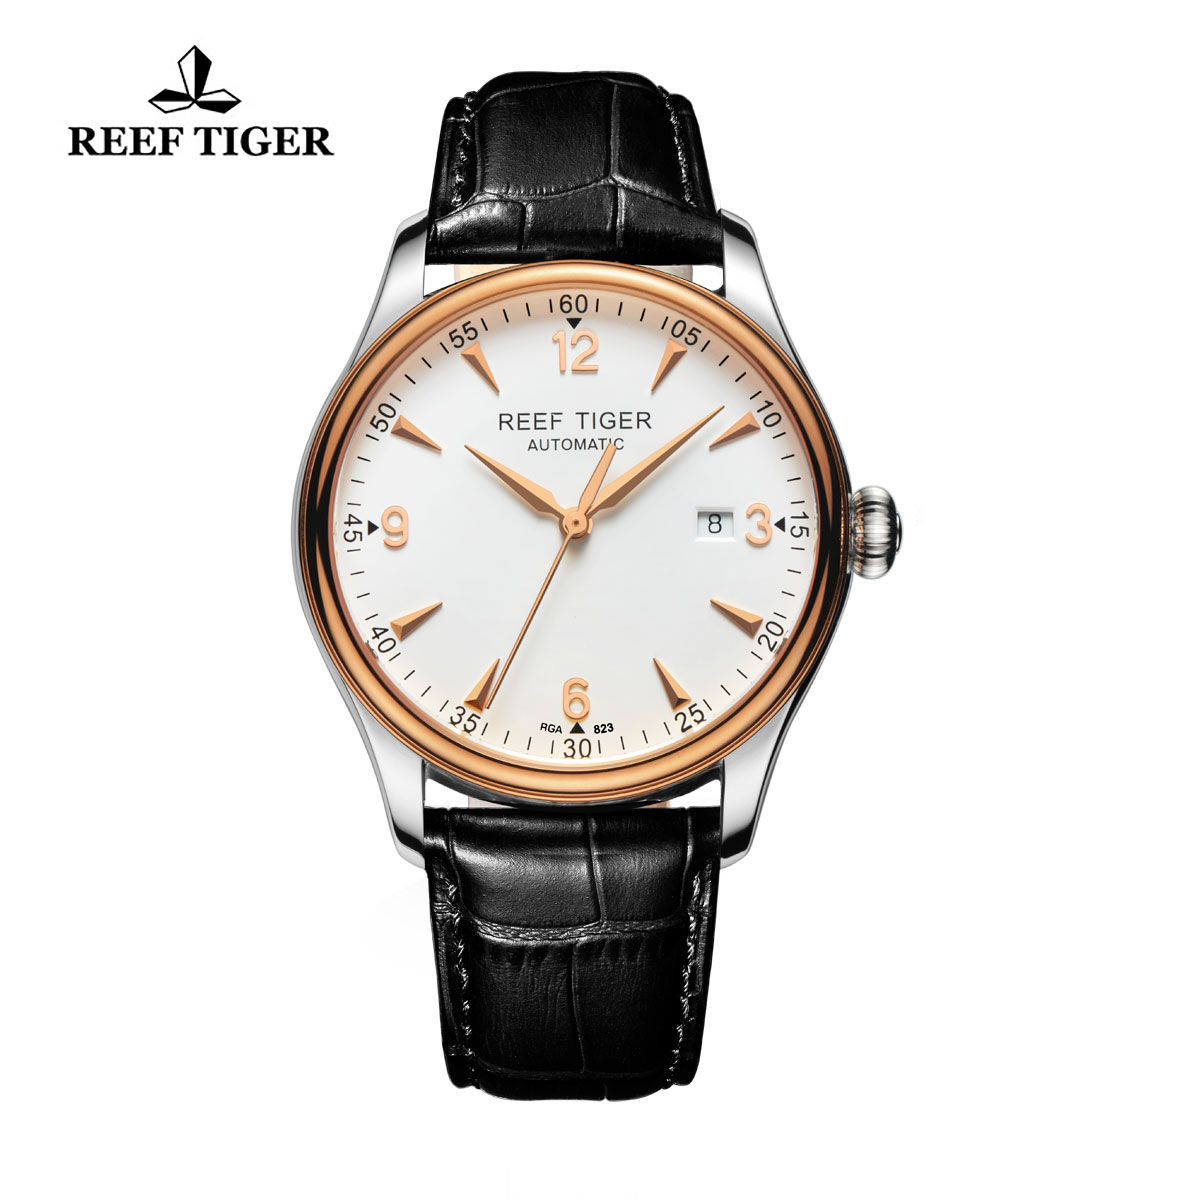 Reef Tiger Heritage Dress Automatic Watch White Dial Calfskin Leather Strap RGA823-PWB